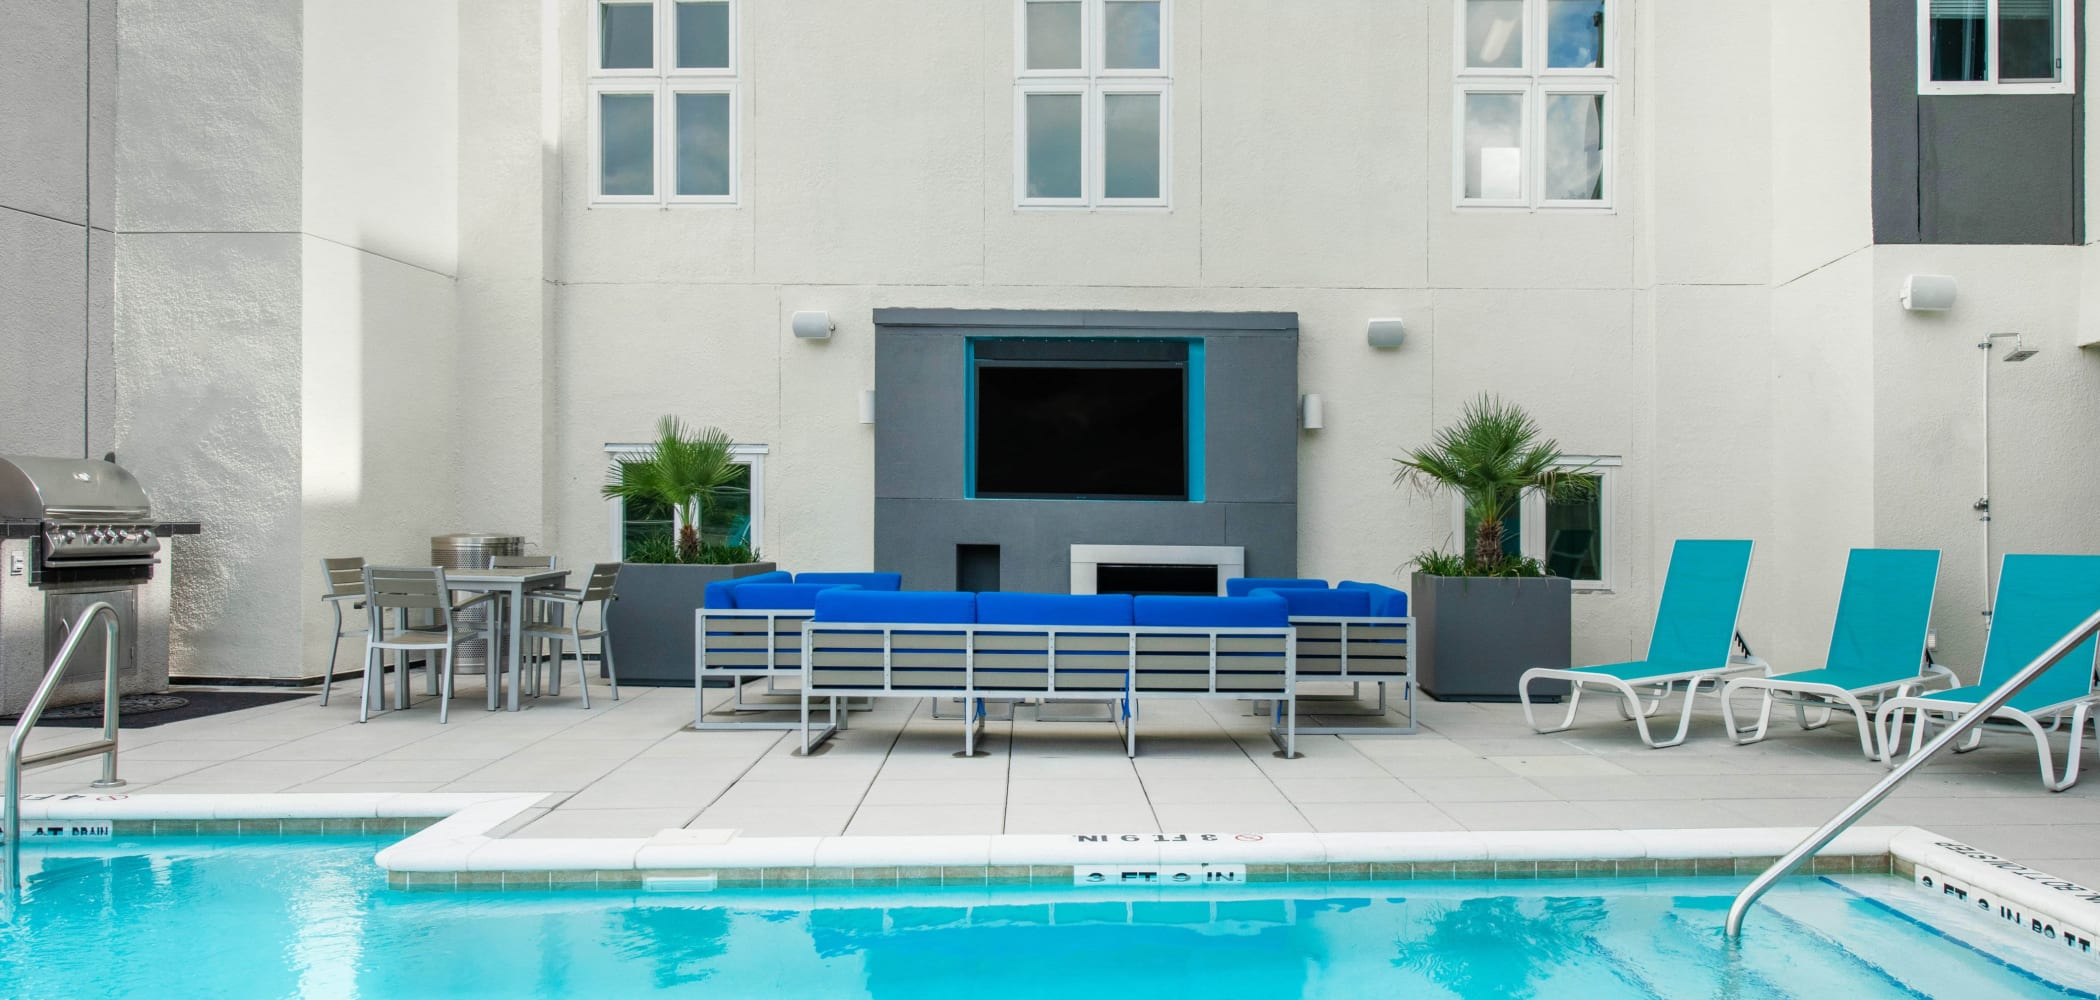 Poolside lounge at Social 28 in Gainesville, Florida